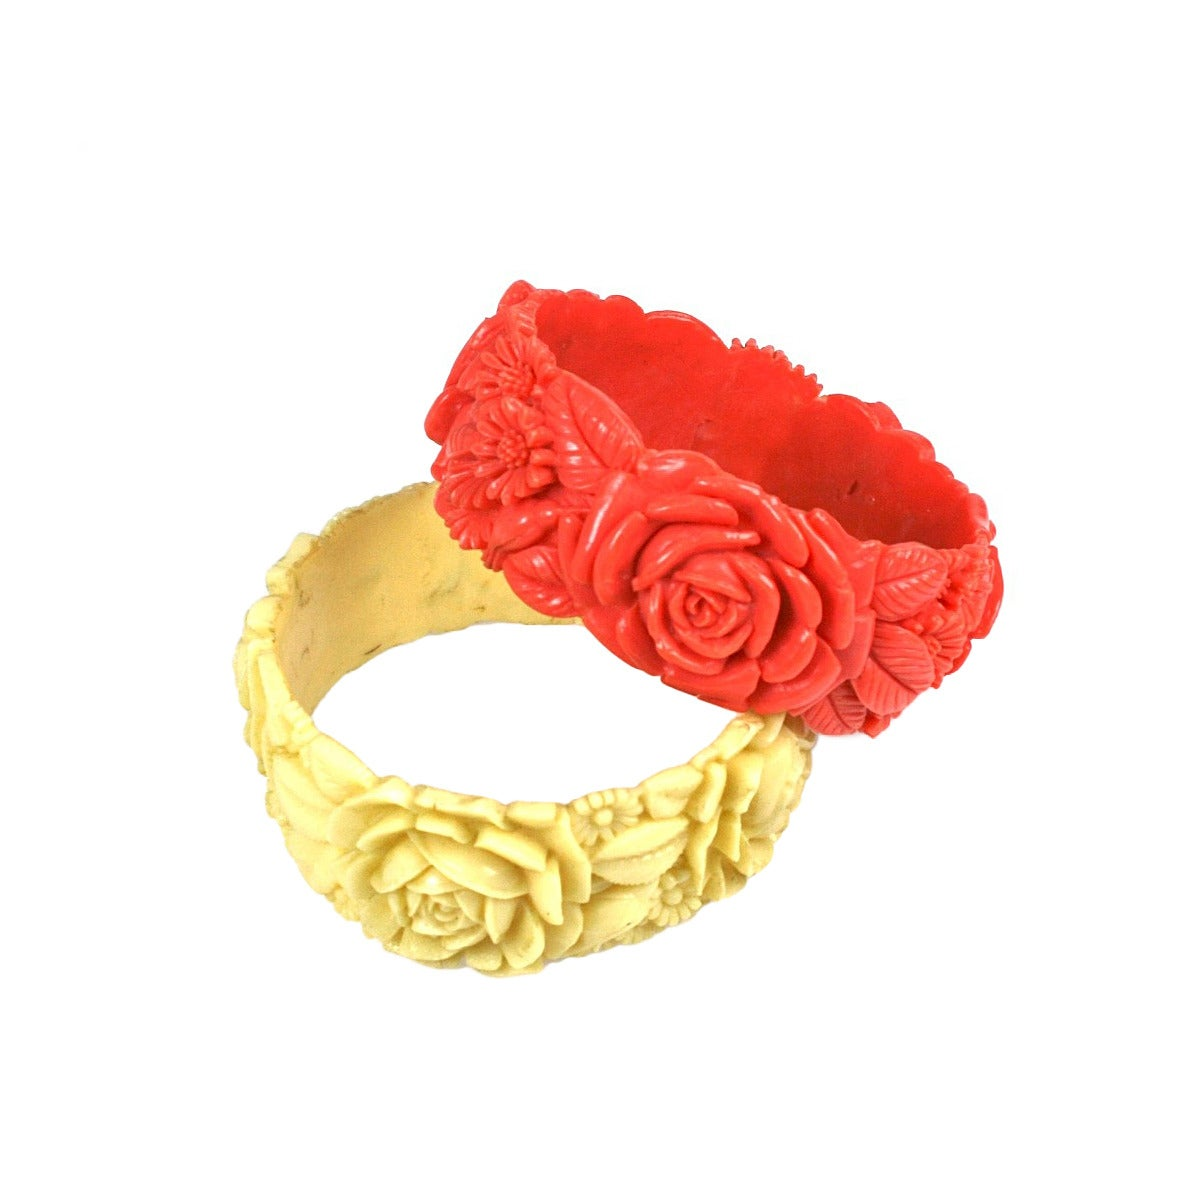 Pair of Deco Celluloid Rose Bangles 1